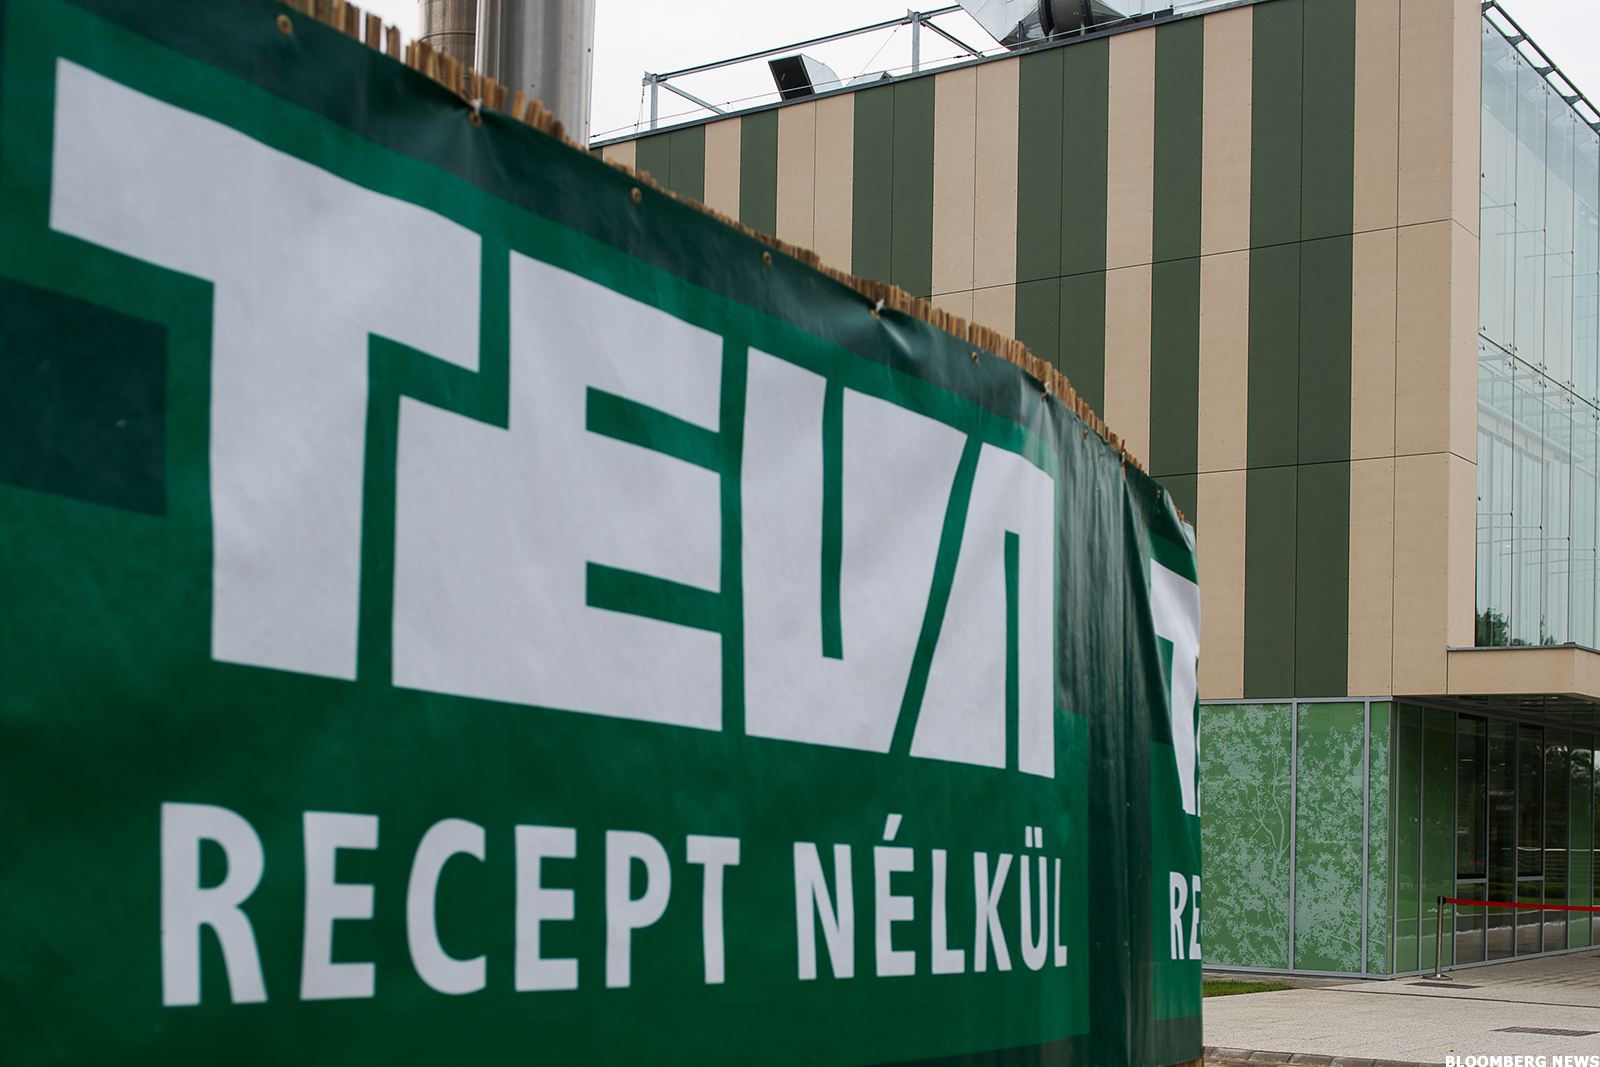 This Weeks Target Prices For Teva Pharmaceutical Industries Limited (NYSE:TEVA)